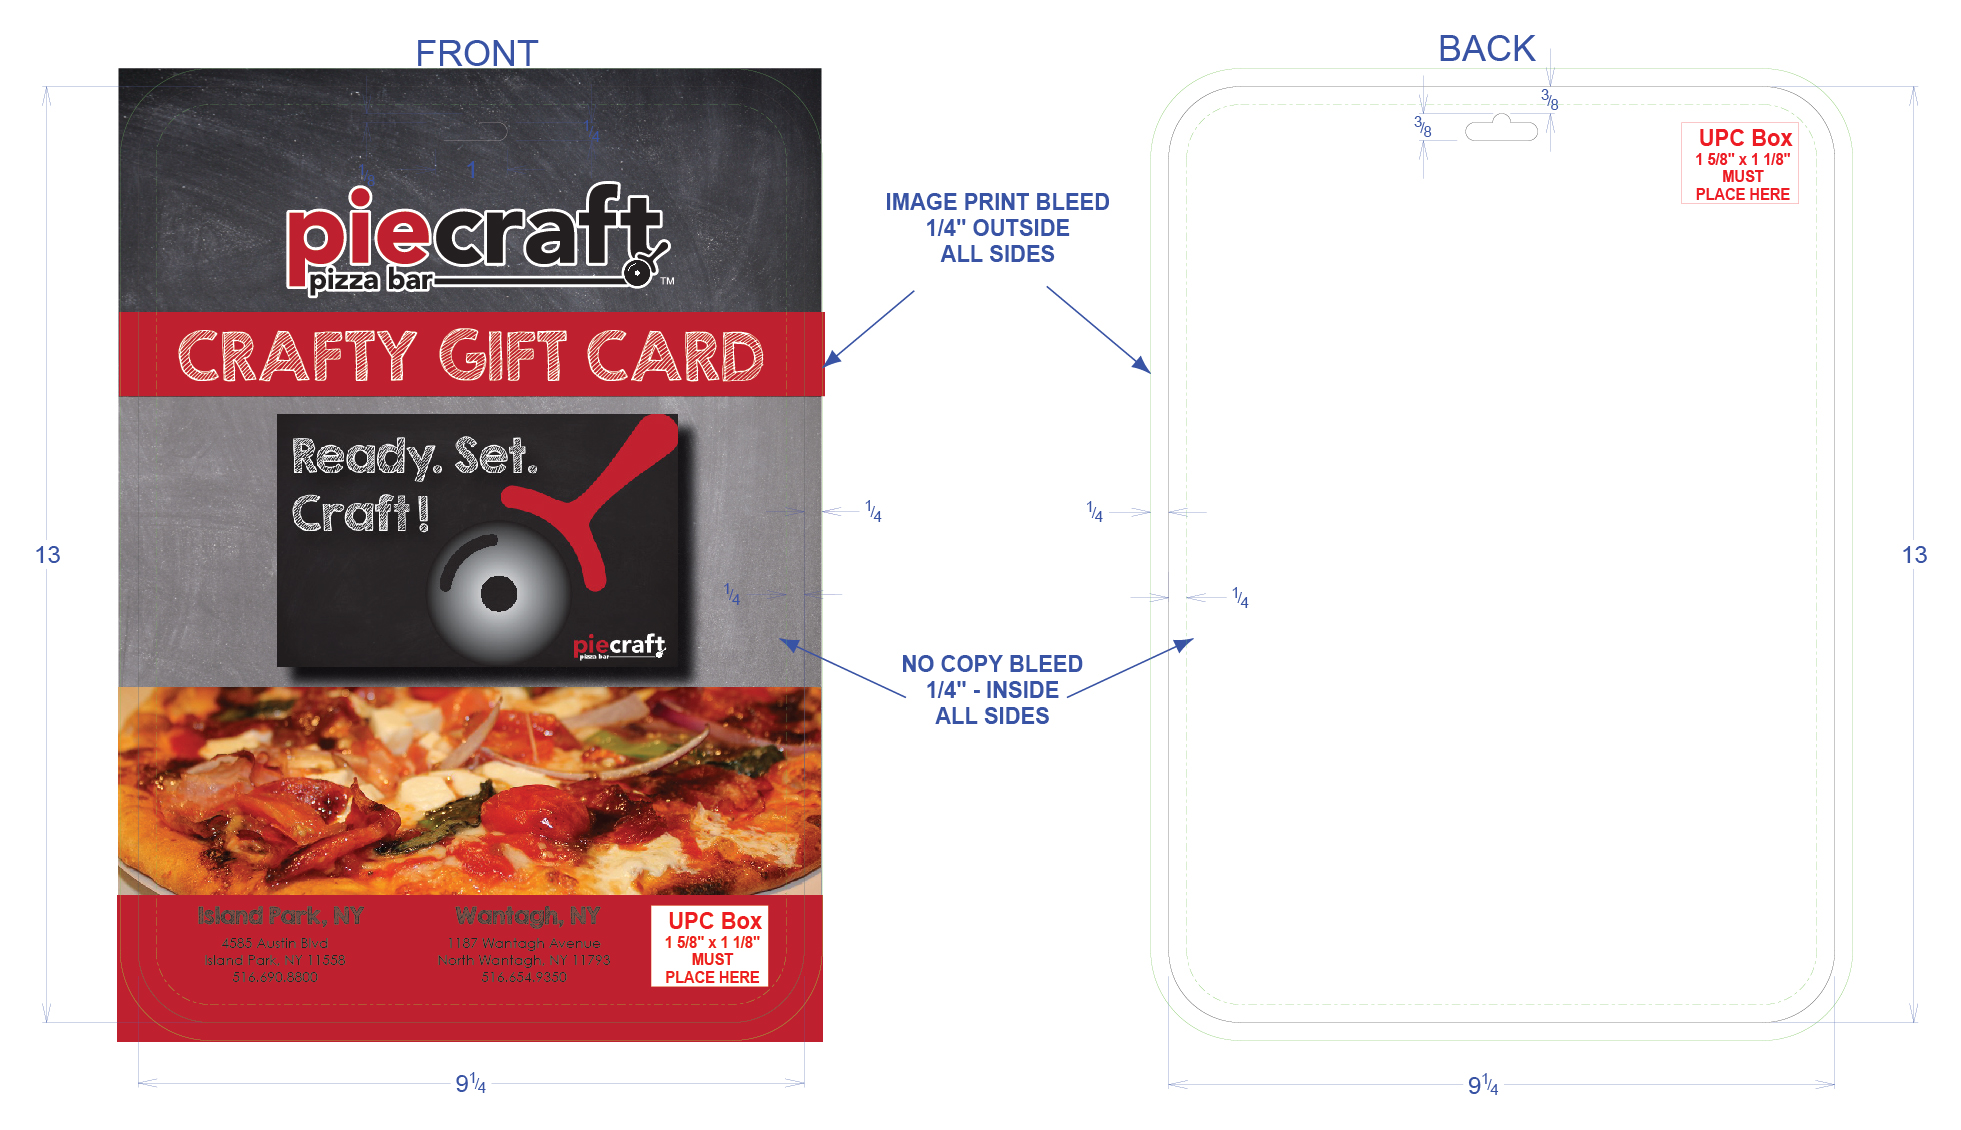 piecraft pizza costco discount card